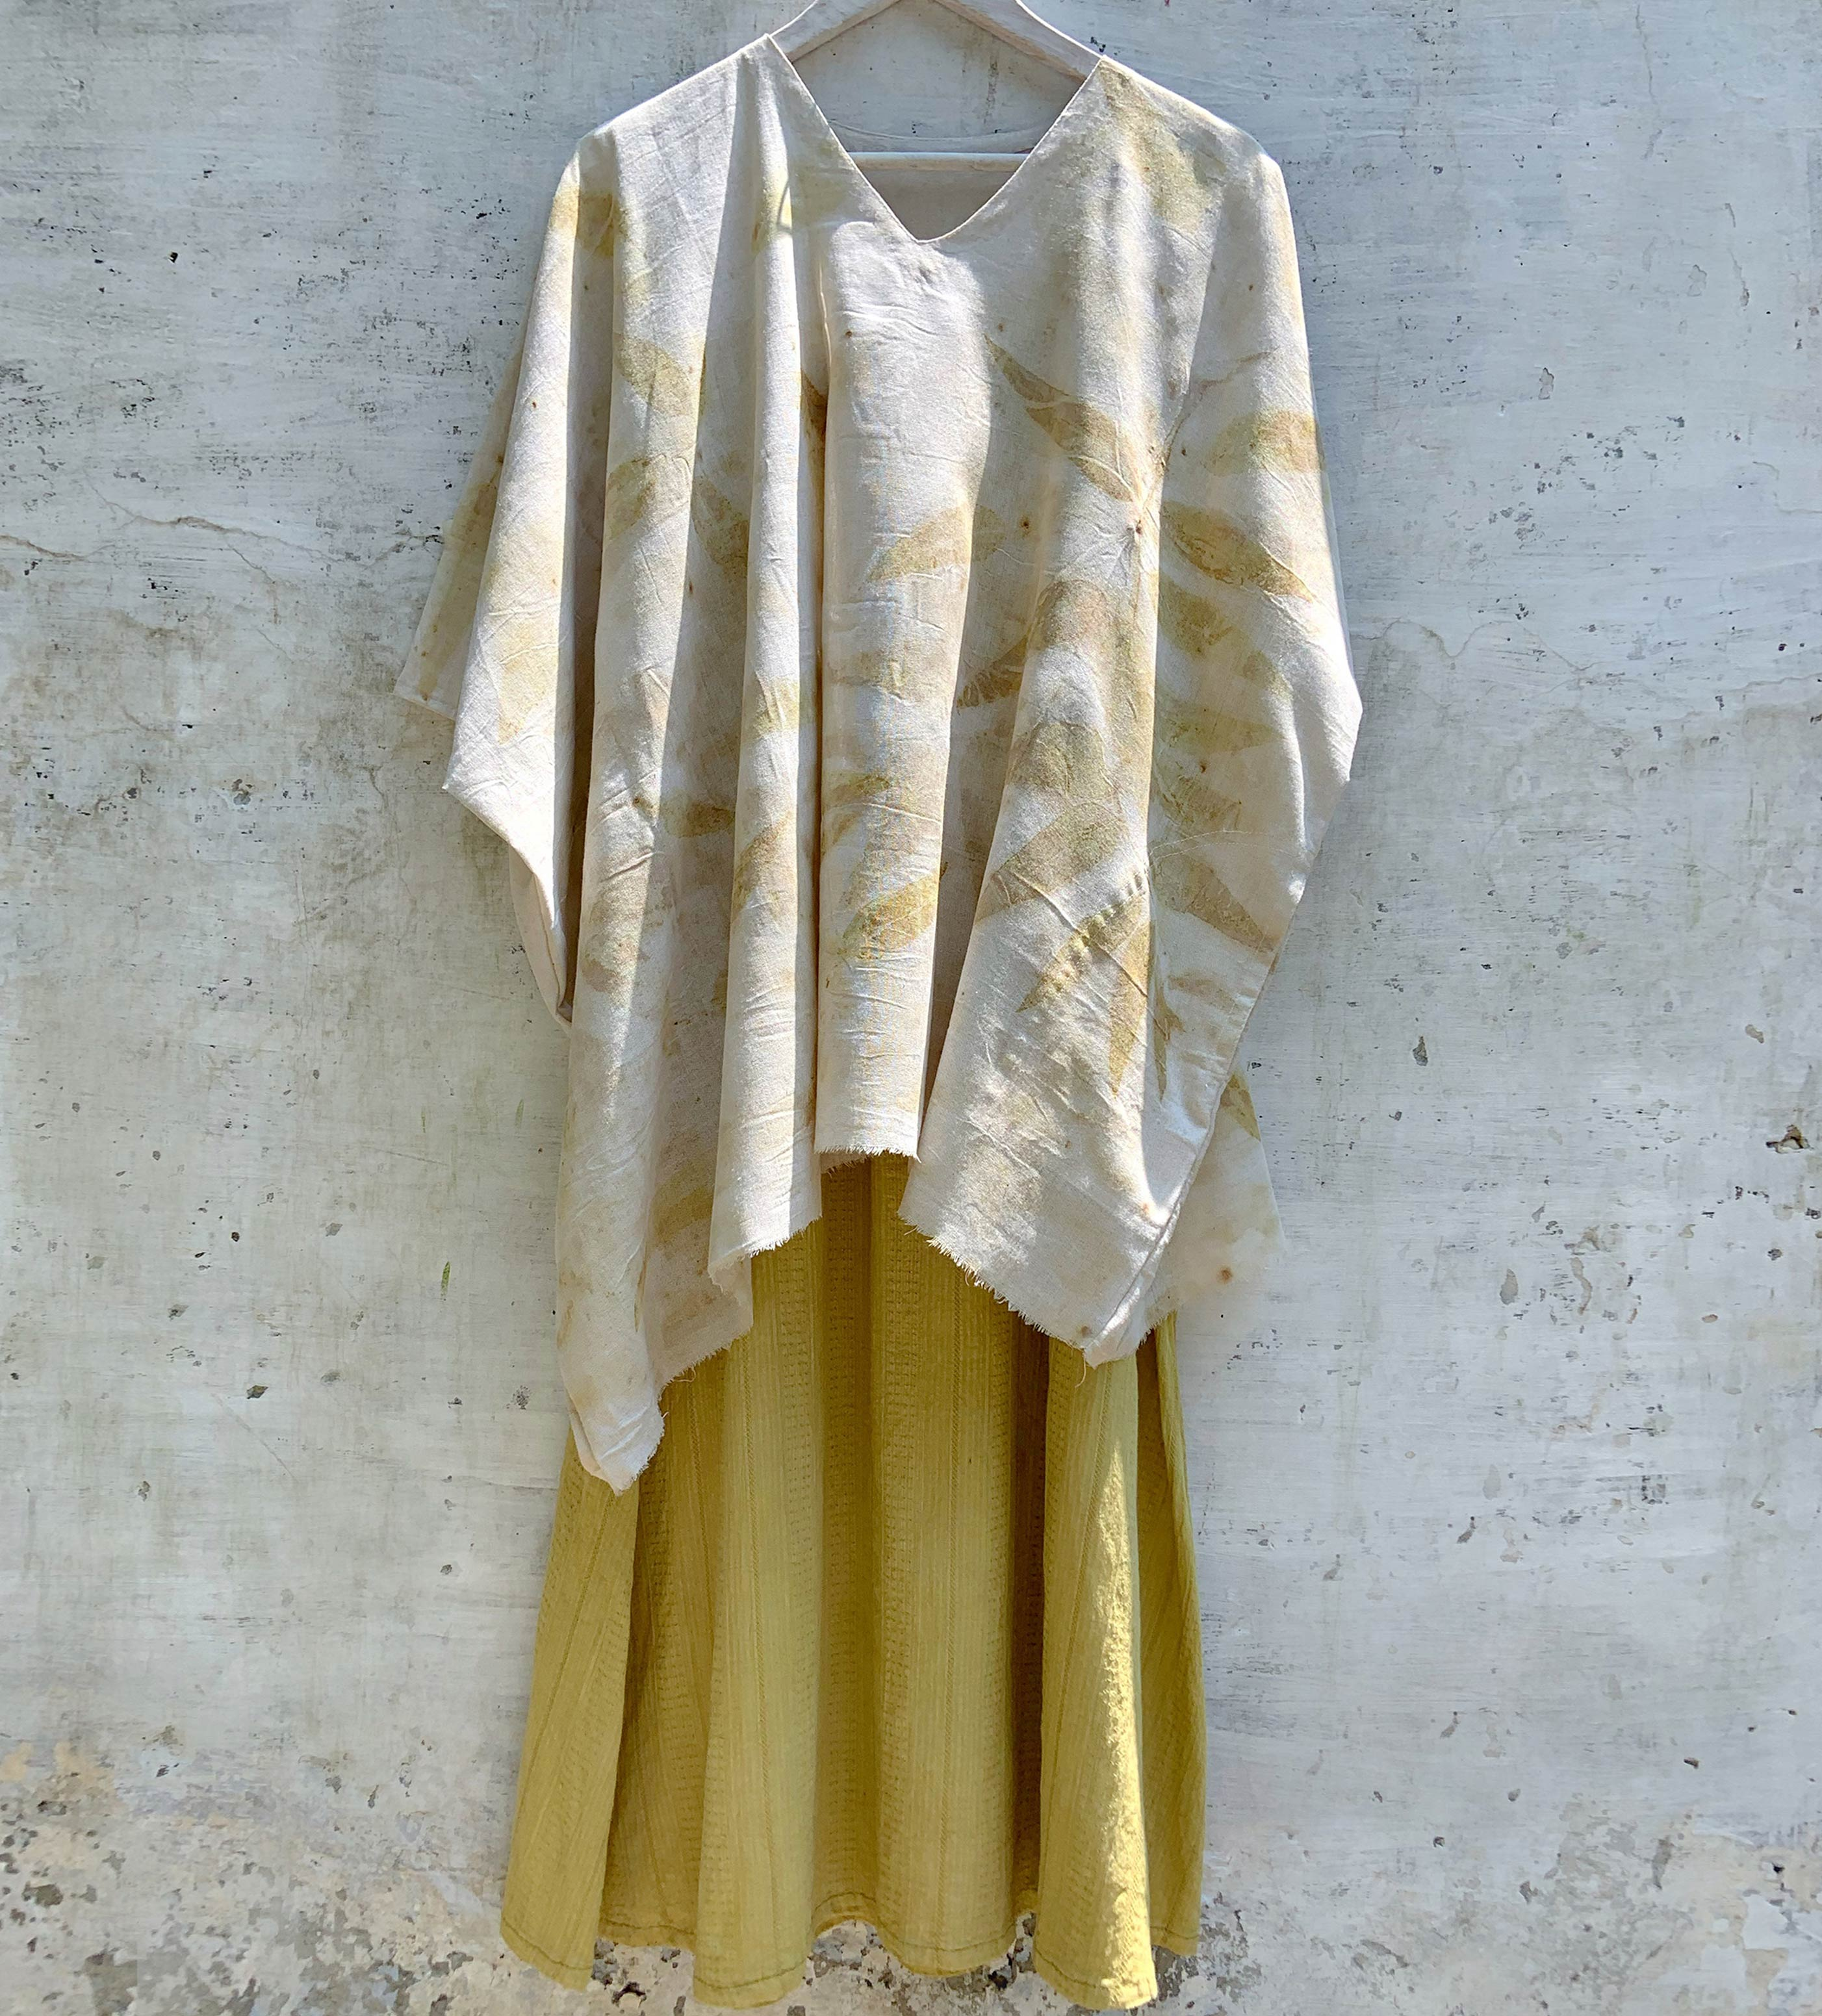 handloom kaftan eco printed with eucalyptus leaves